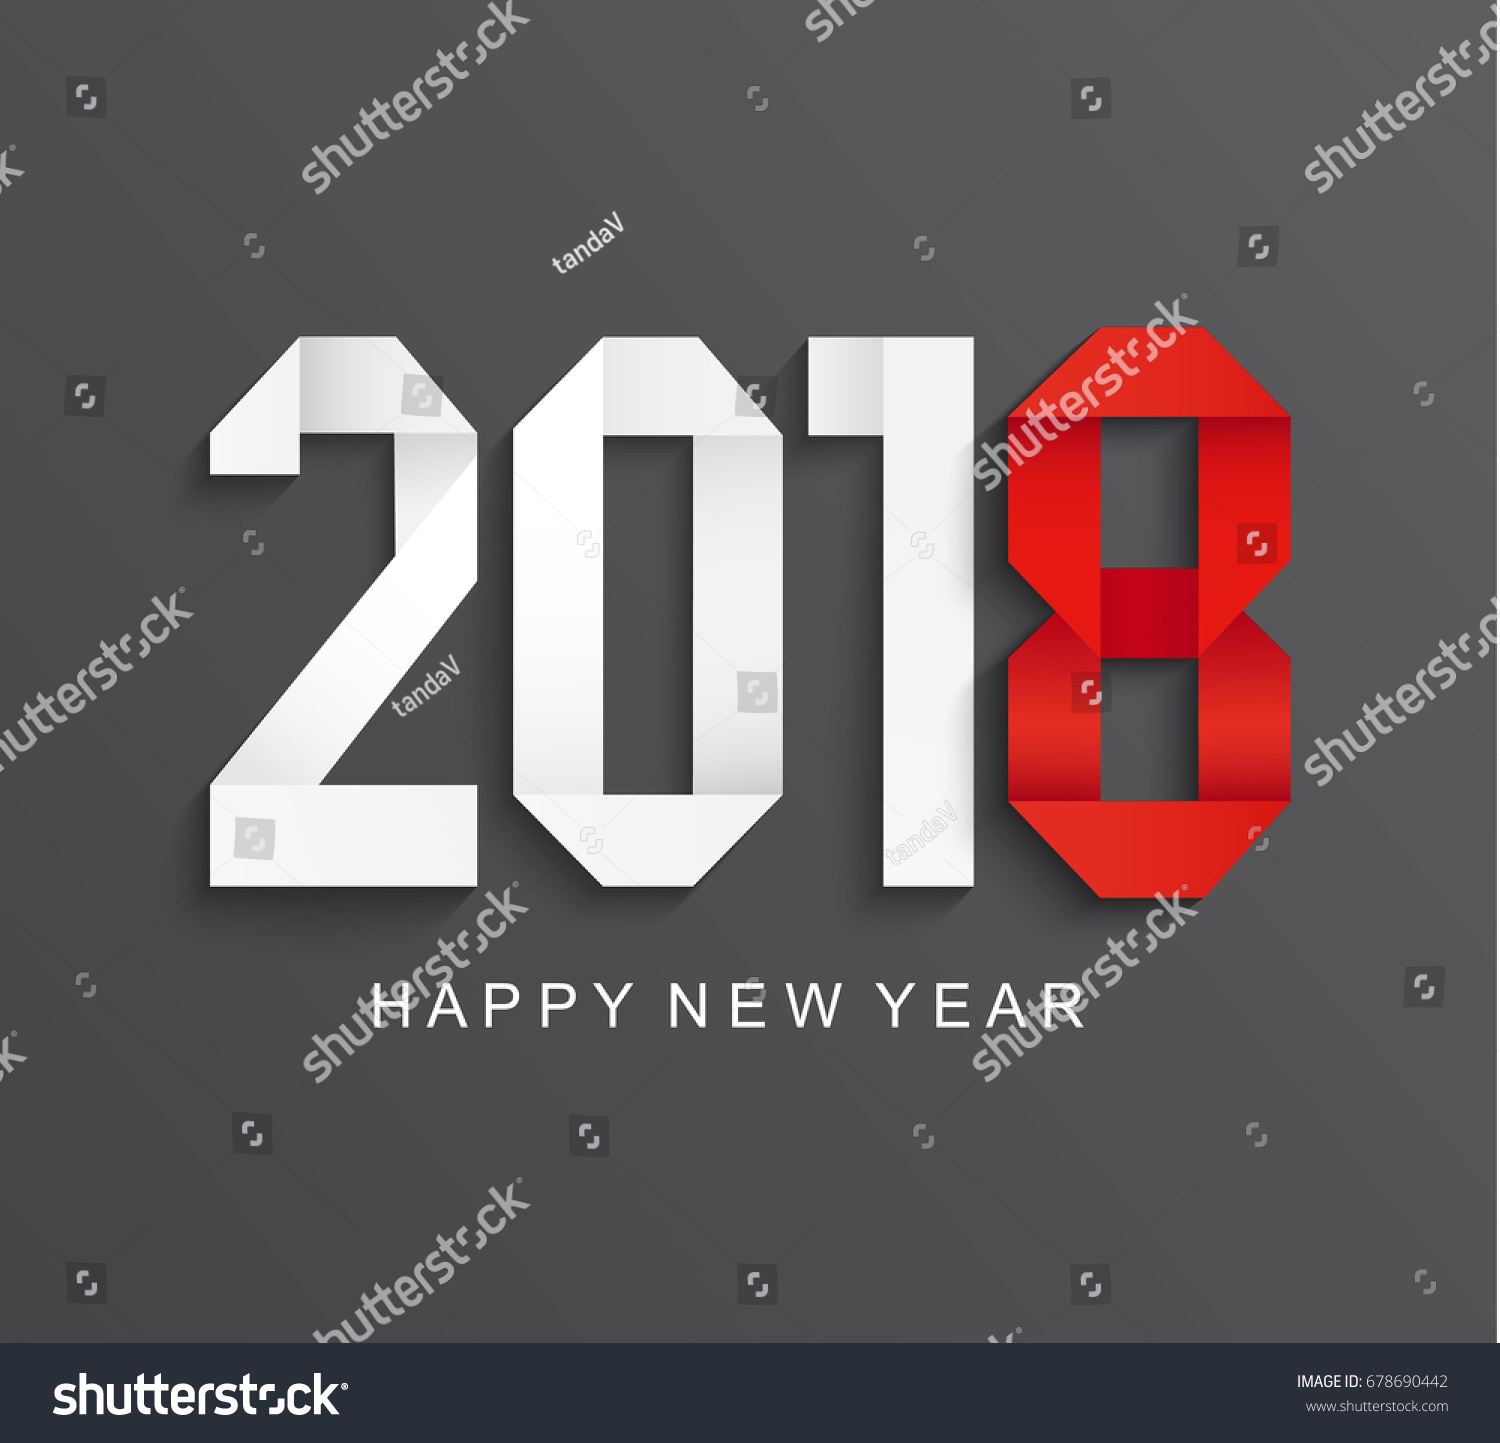 New 2018 Year Greeting Card Made Stock Vector 678690442 ... - photo#38